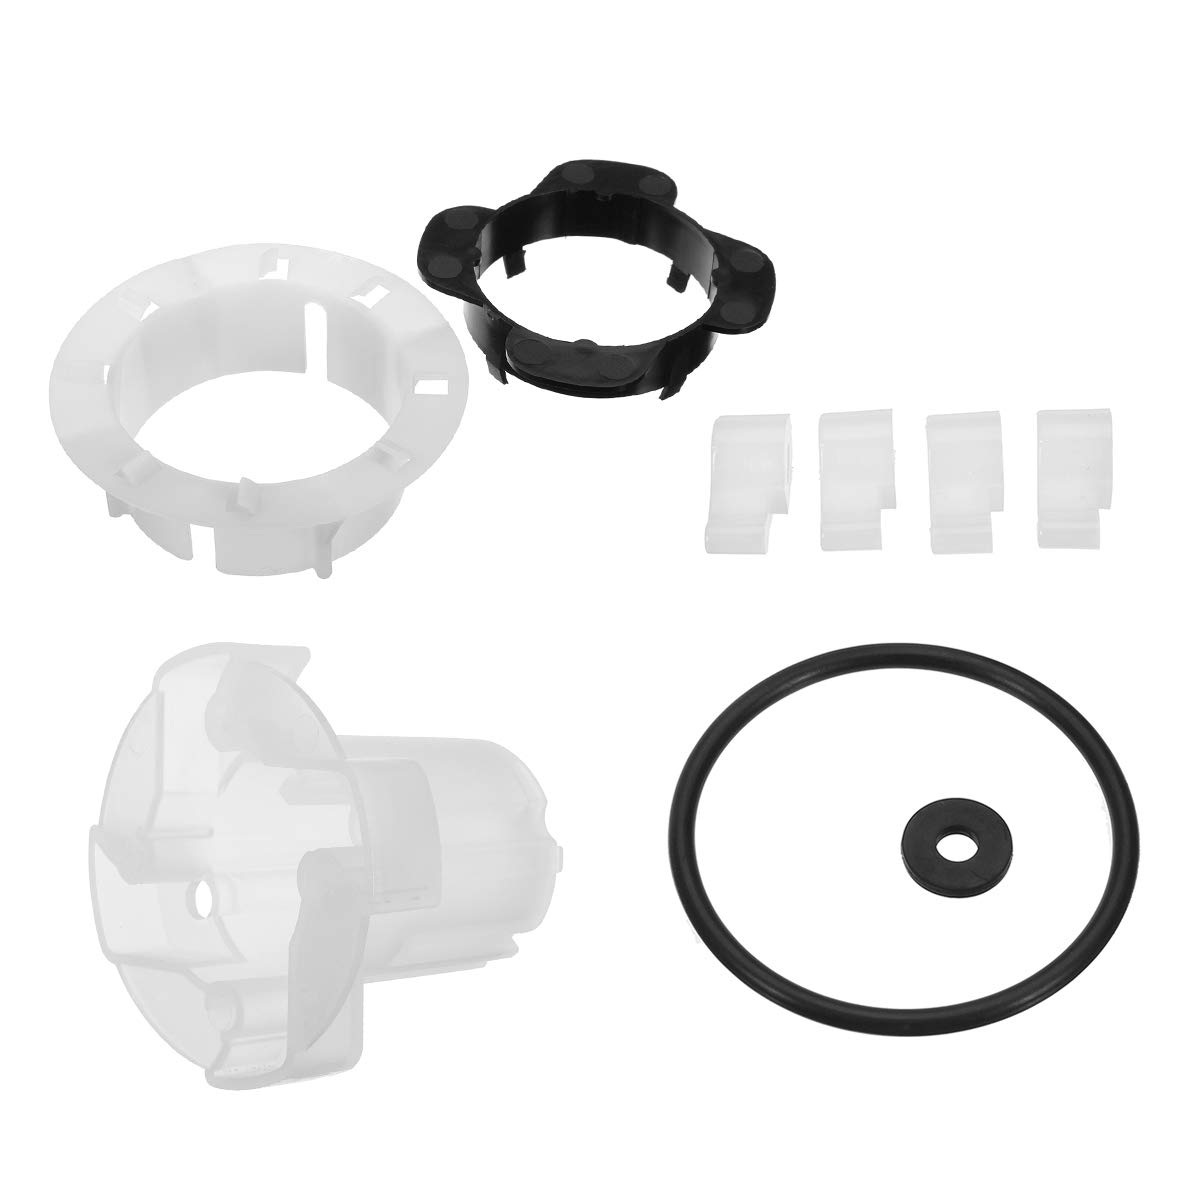 Agitator Repair Kit For 285811 Washer Replacement Whirlpool & Kenmore Washer AP3138838